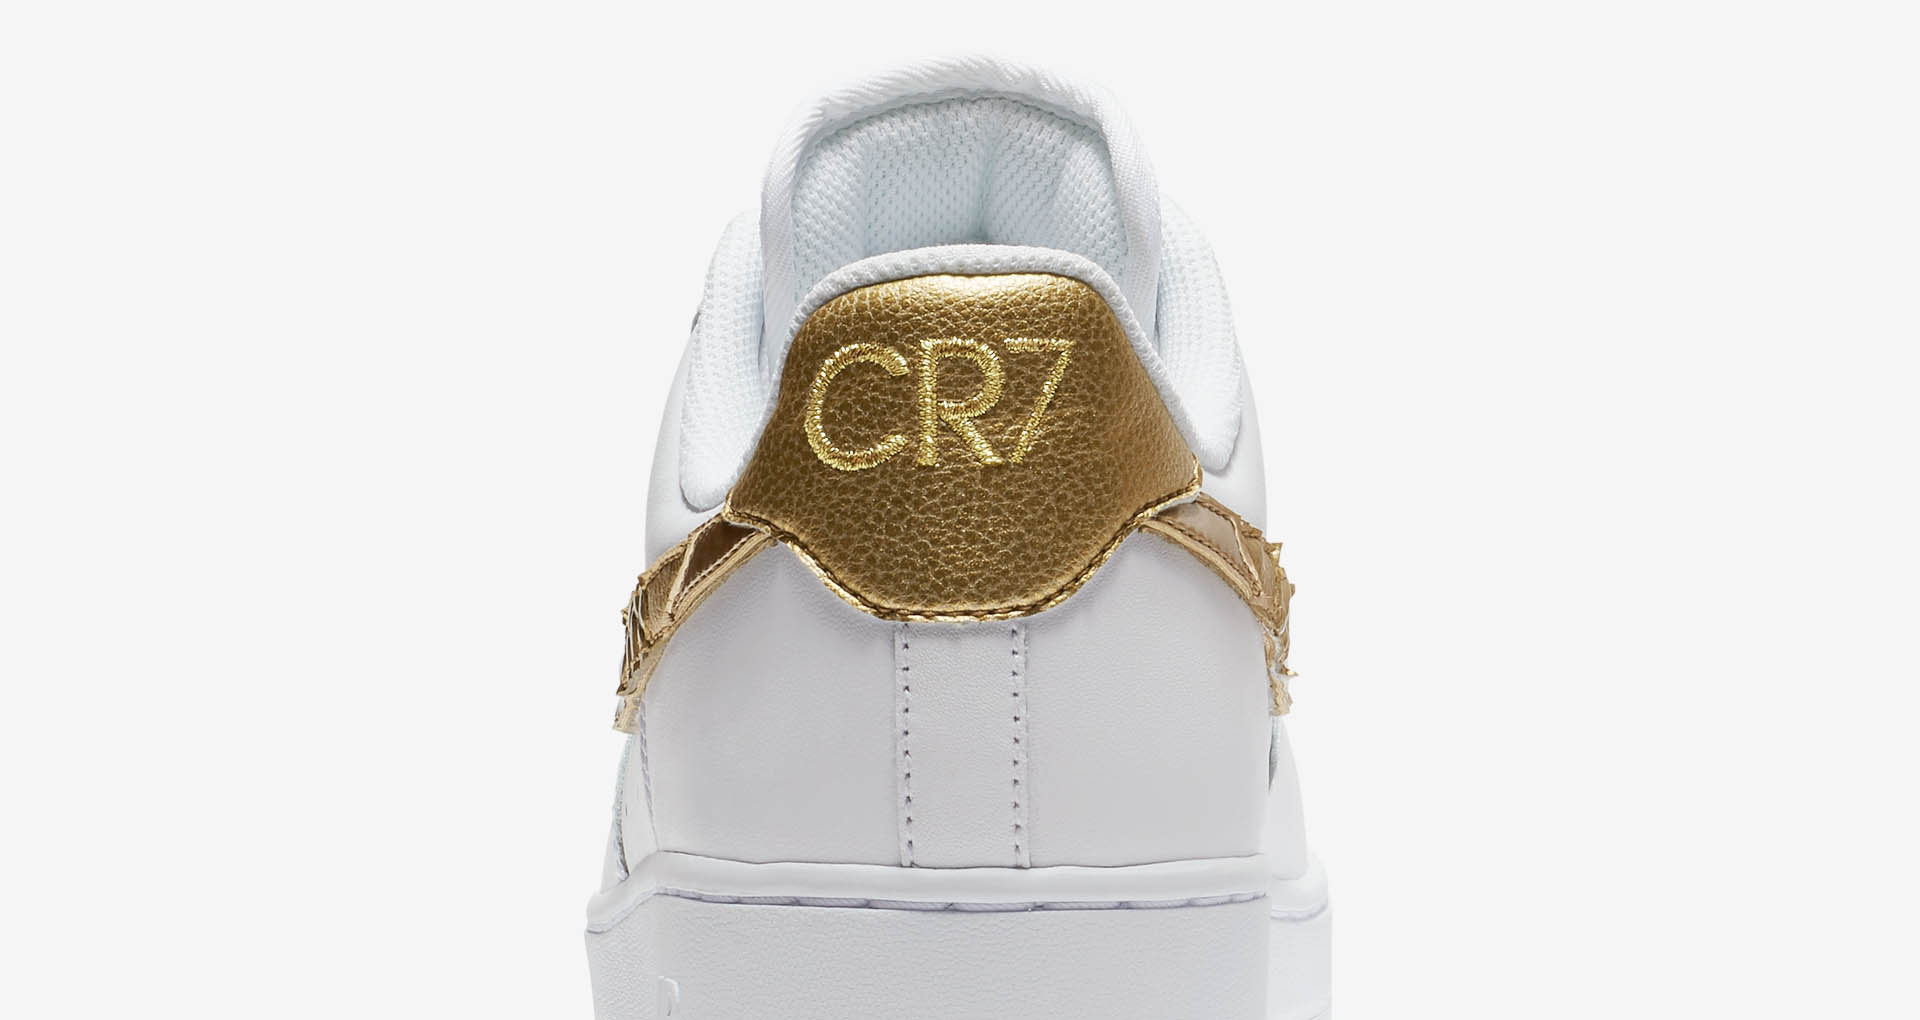 histórico Ciencias Sociales Incomparable  Nike Unveil the Air Force 1 CR7 Inspired by Cristiano Ronaldo